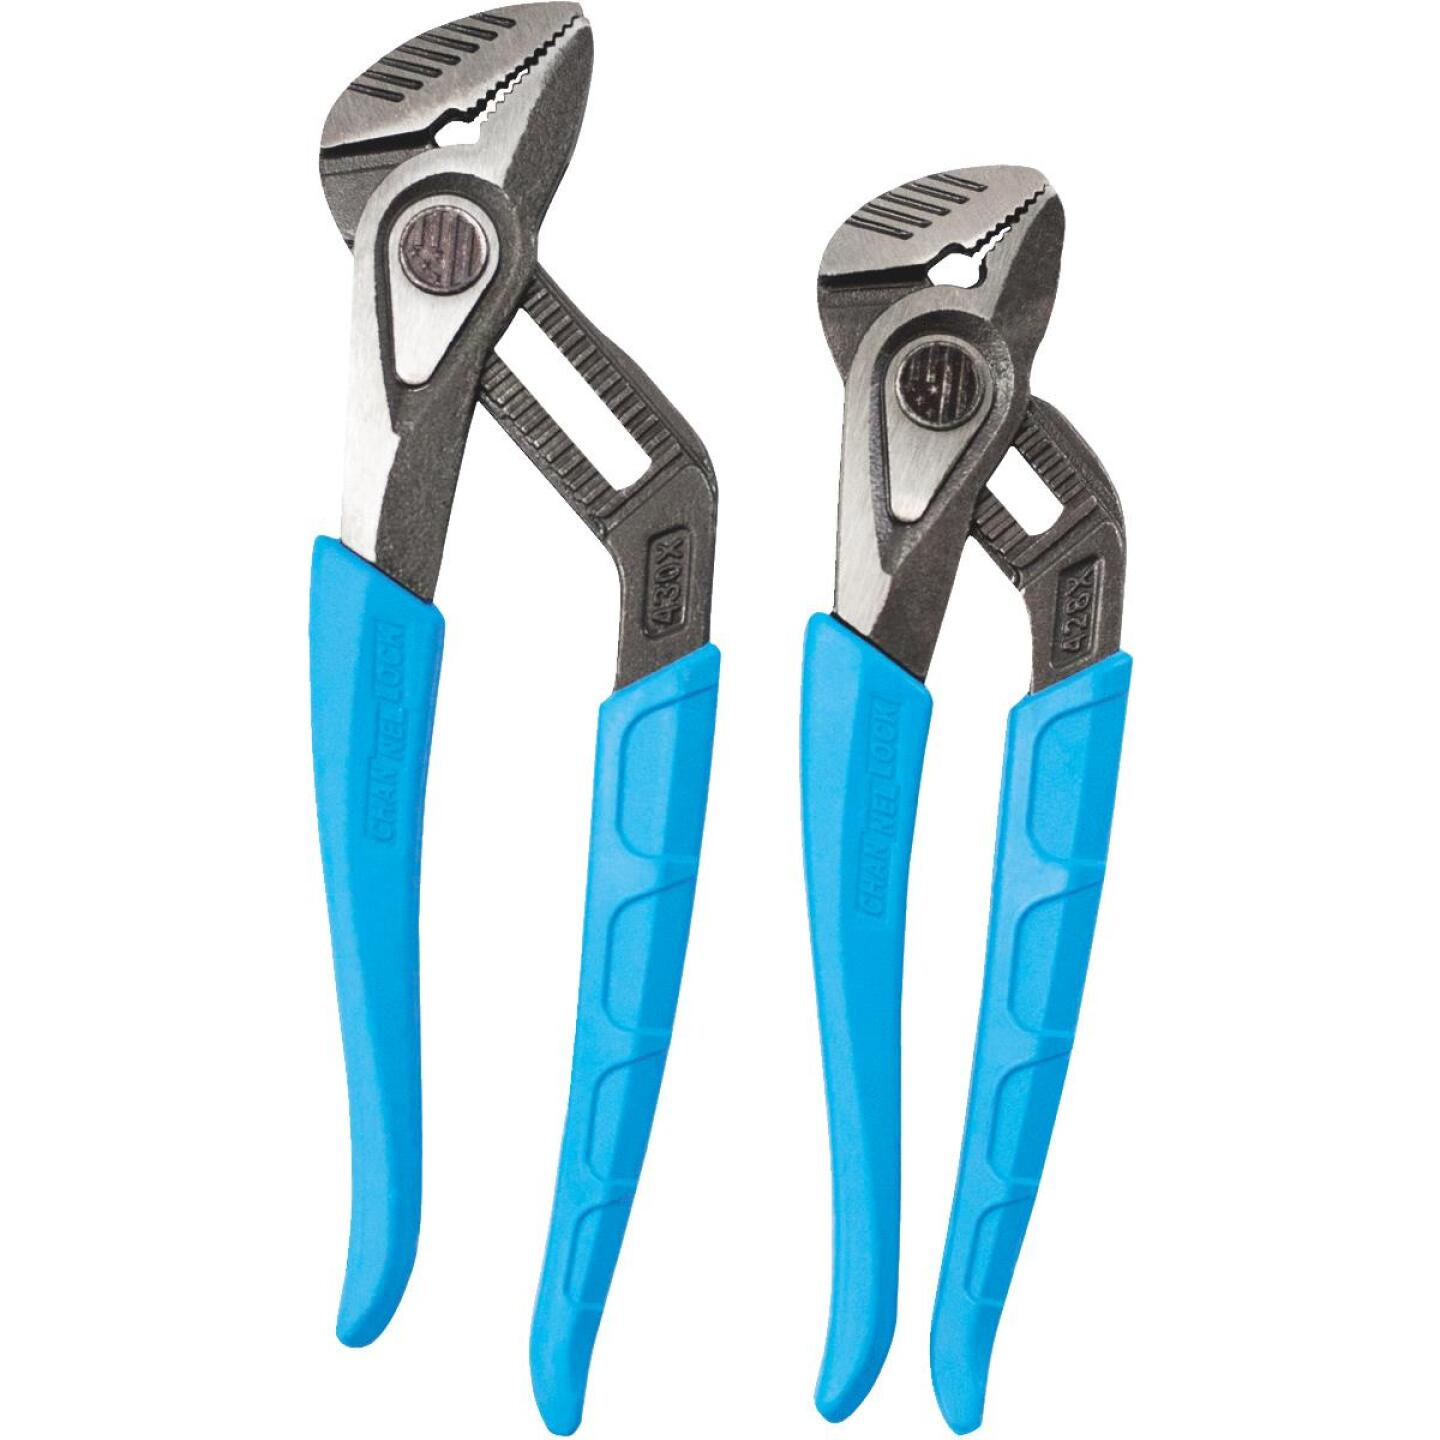 Channellock SpeedGrip 8 In. and 10 In. Plier Set (2-Piece) Image 3